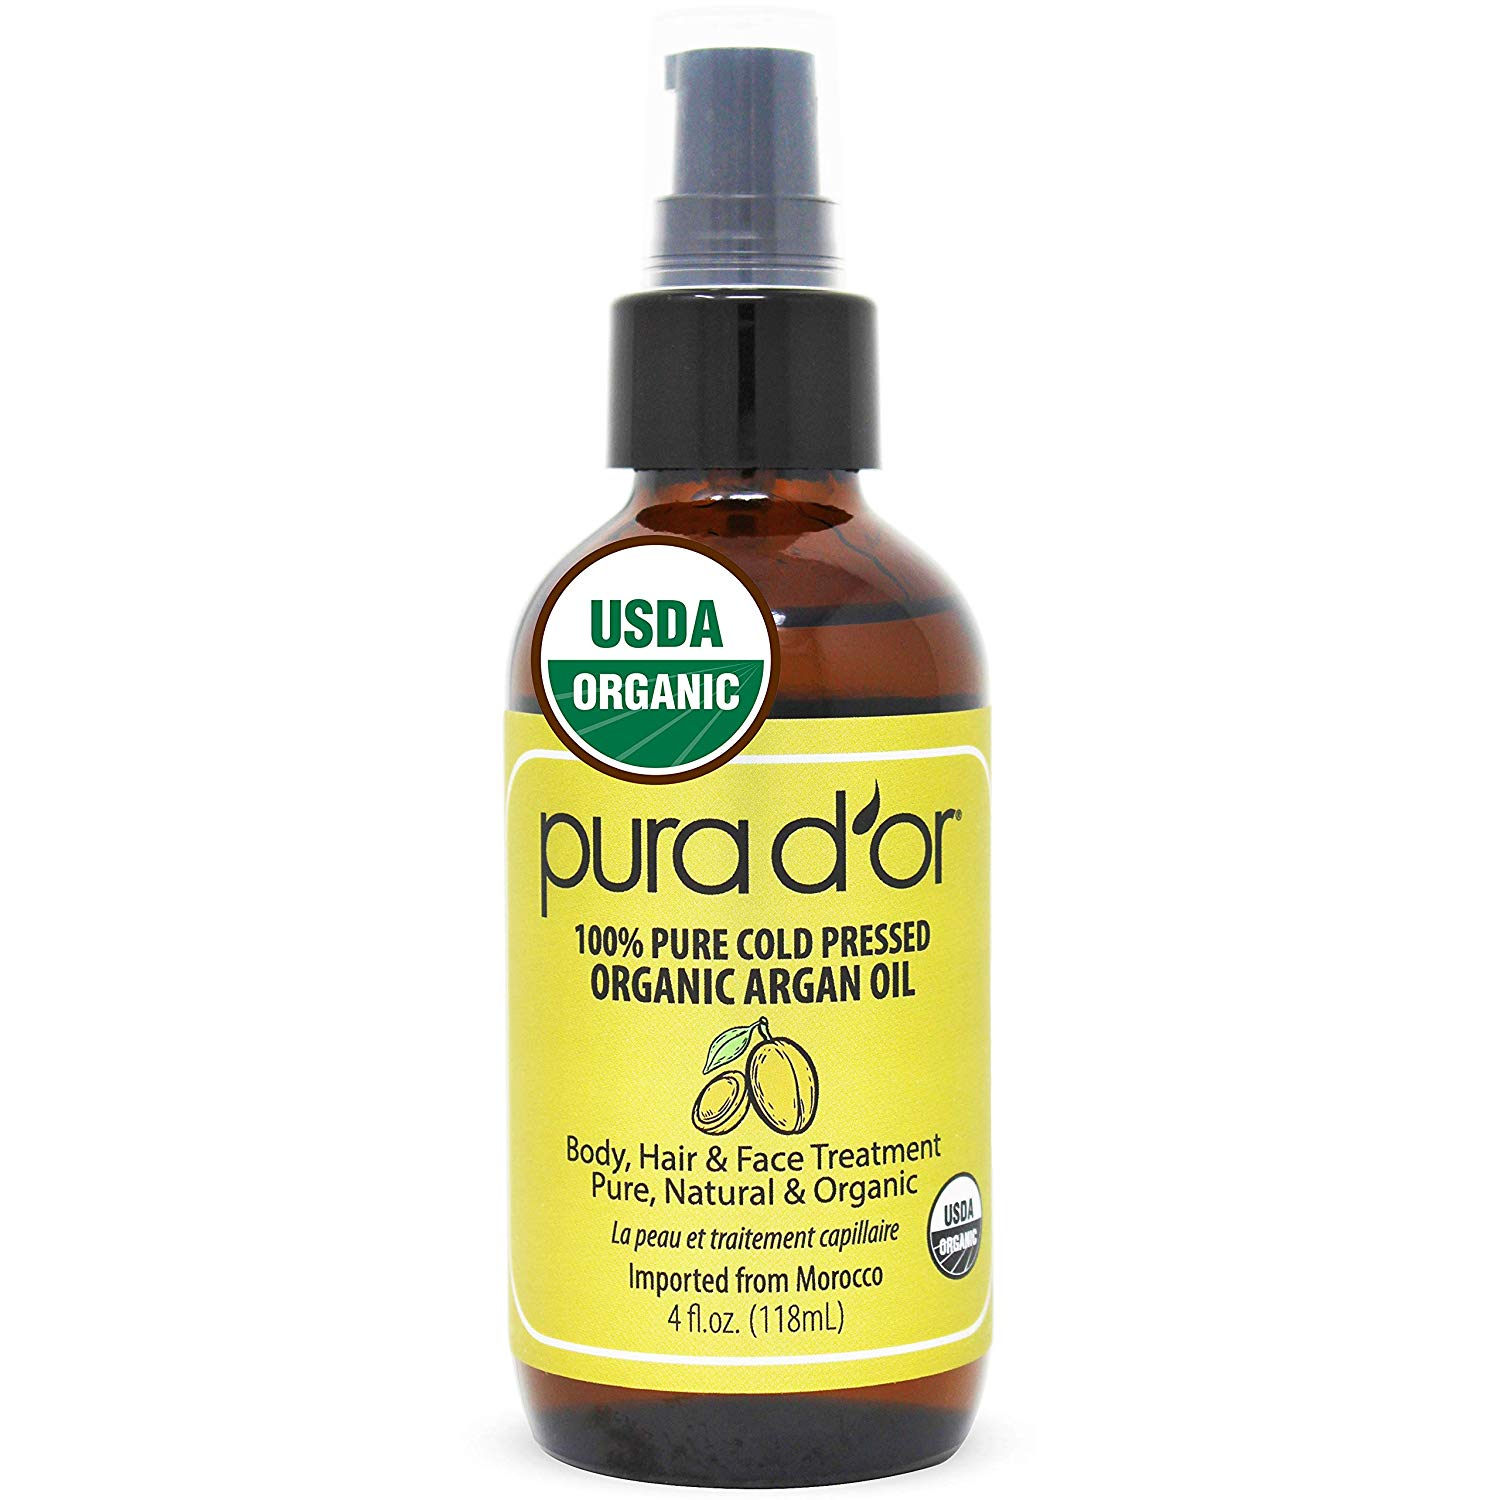 PURA D'OR Moroccan Argan Oil for Hair, Face, Skin, Scalp & Nails